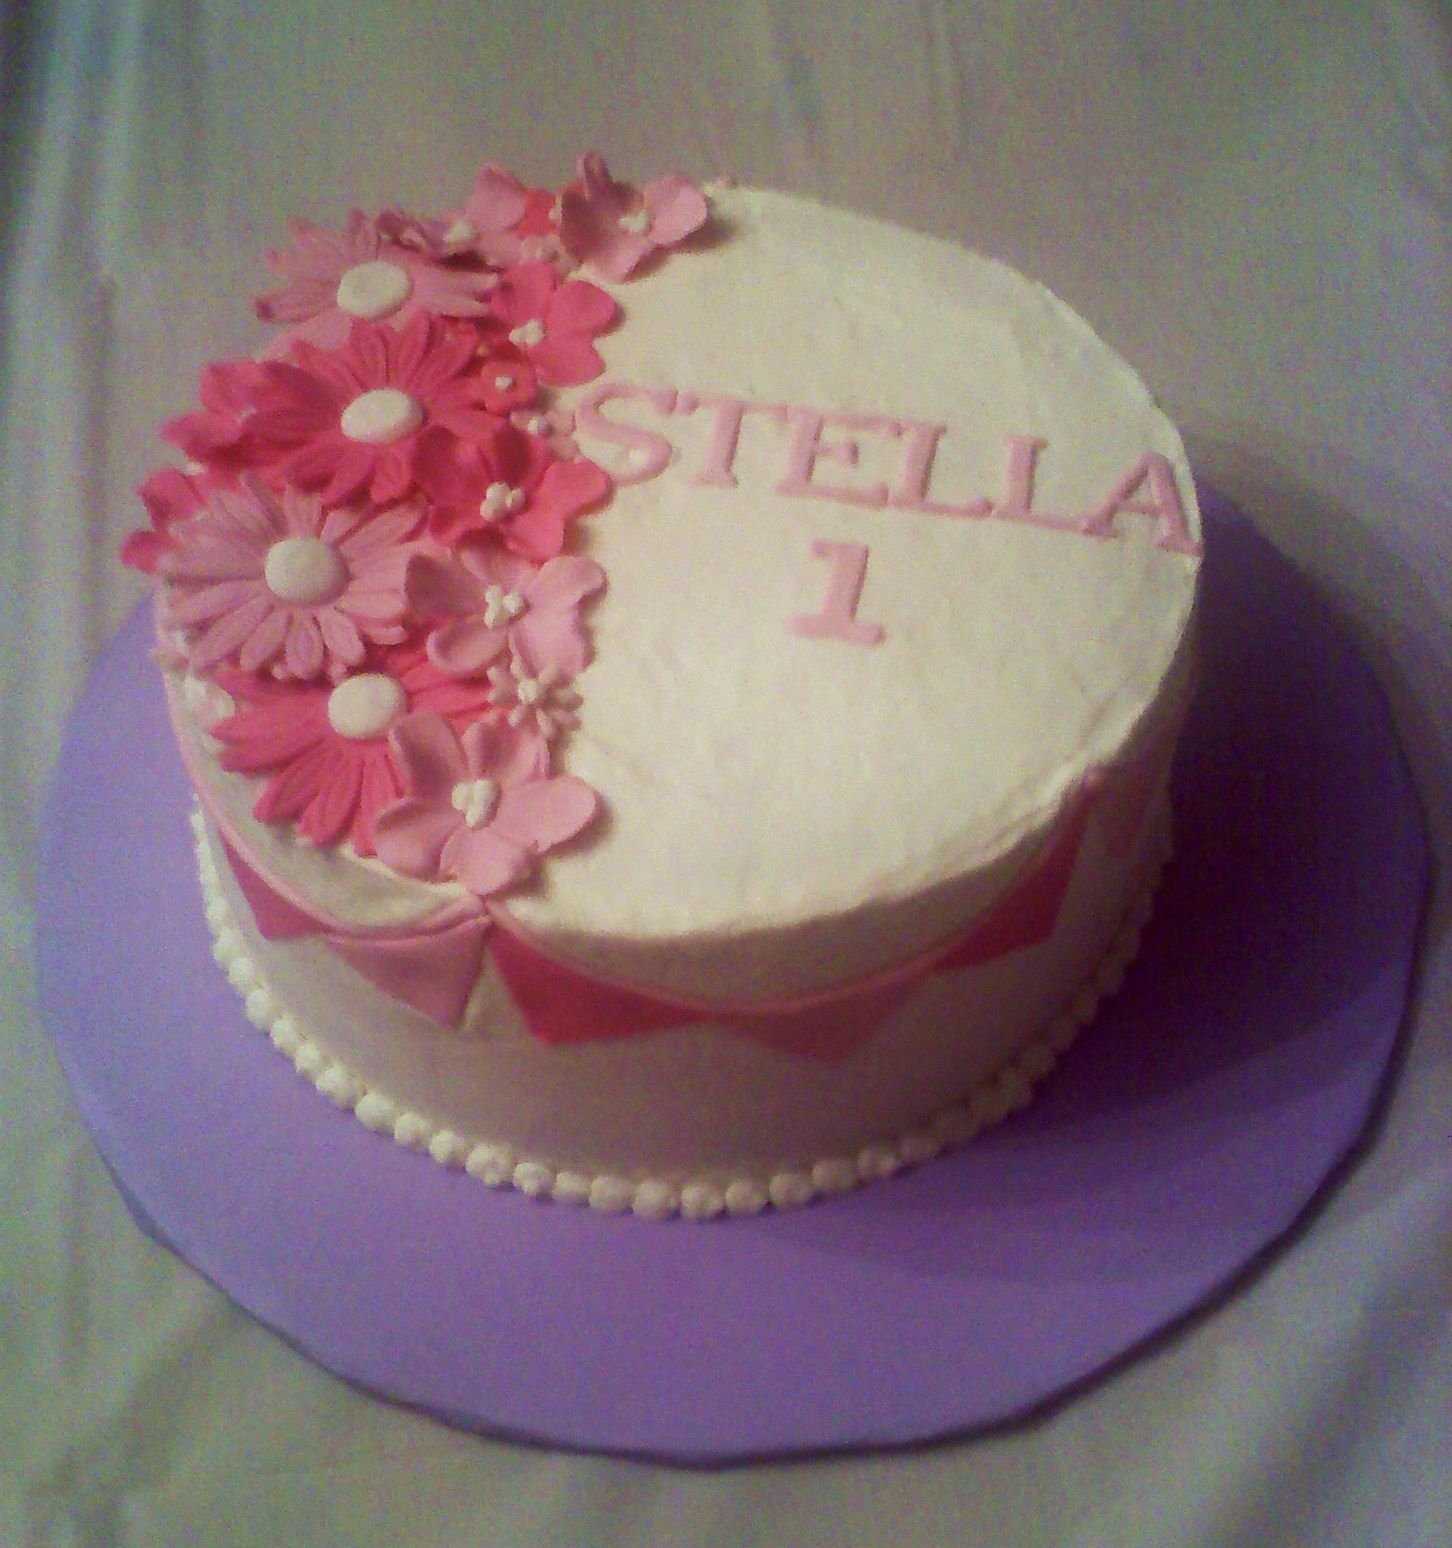 Easy Girly Cake Ideas 51641 Cakes And Cookies By Andrea Gi